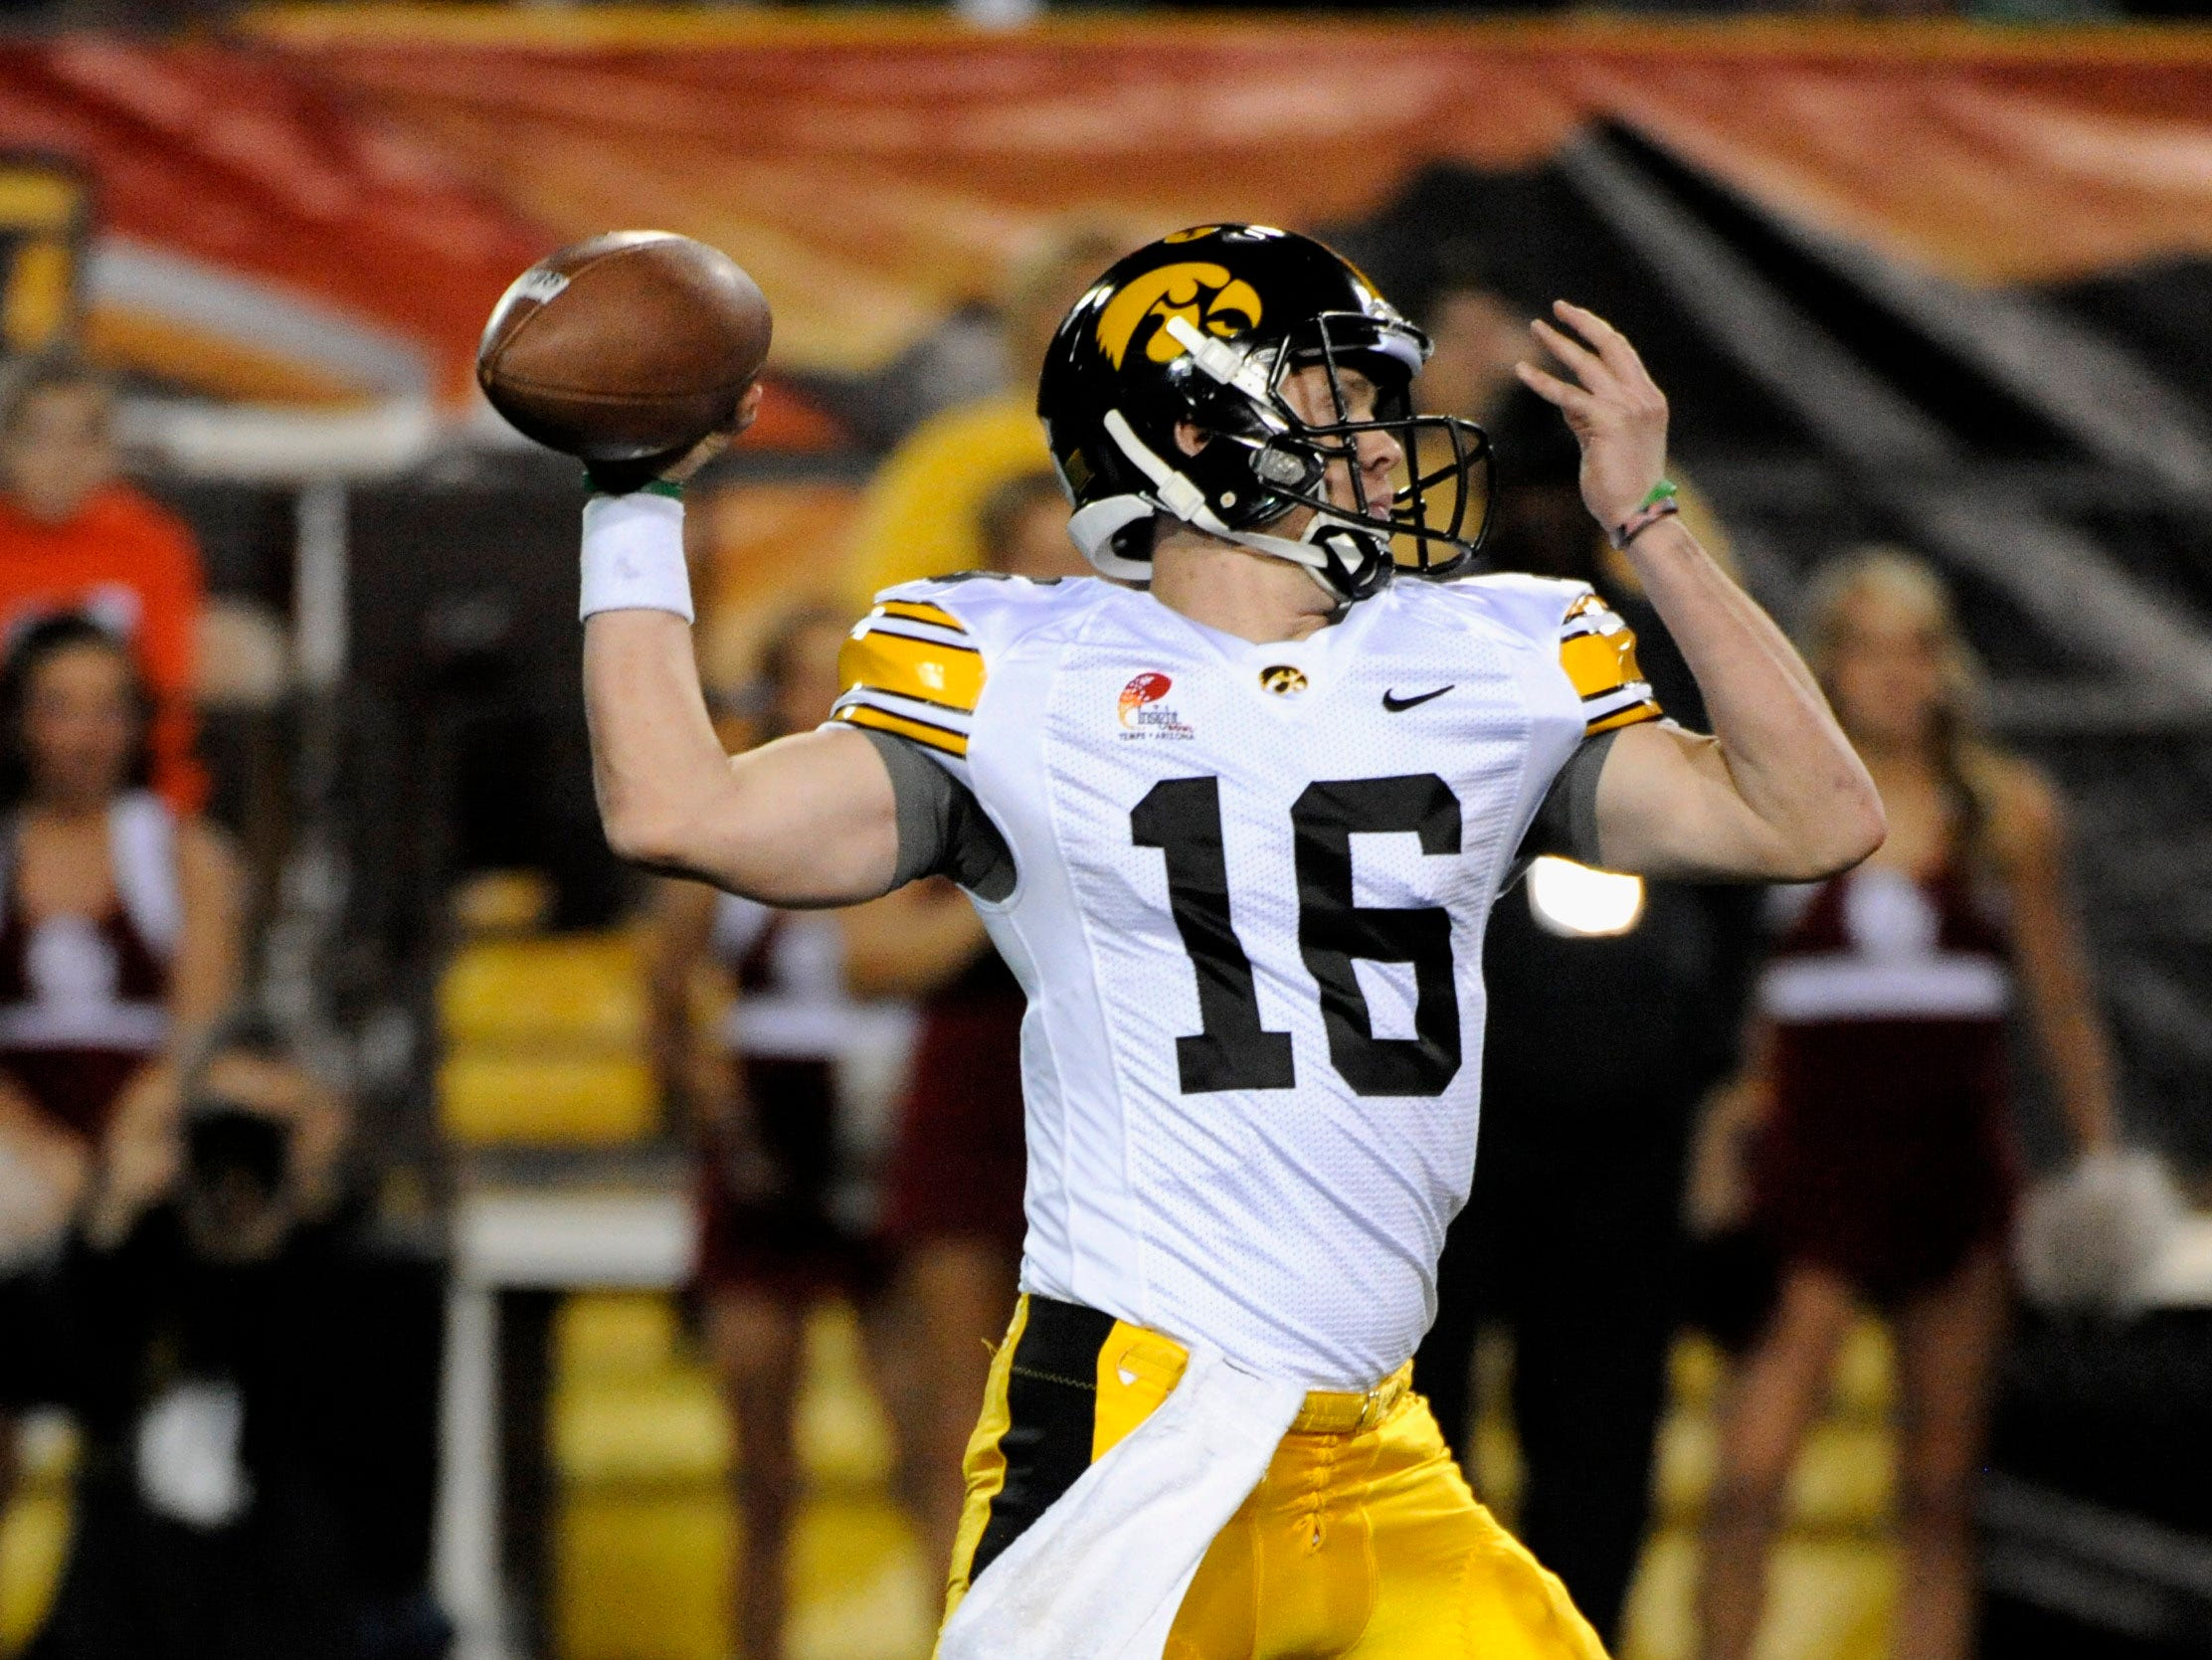 Dec 30, 2011; Tempe, AZ, USA; Iowa Hawkeyes quarterback James Vandenberg (16) passes against Oklahoma Sooners during the first half of the 2011 Insight Bowl at the Sun Devil Stadium. Mandatory Credit: Richard Mackson-USA TODAY Sports